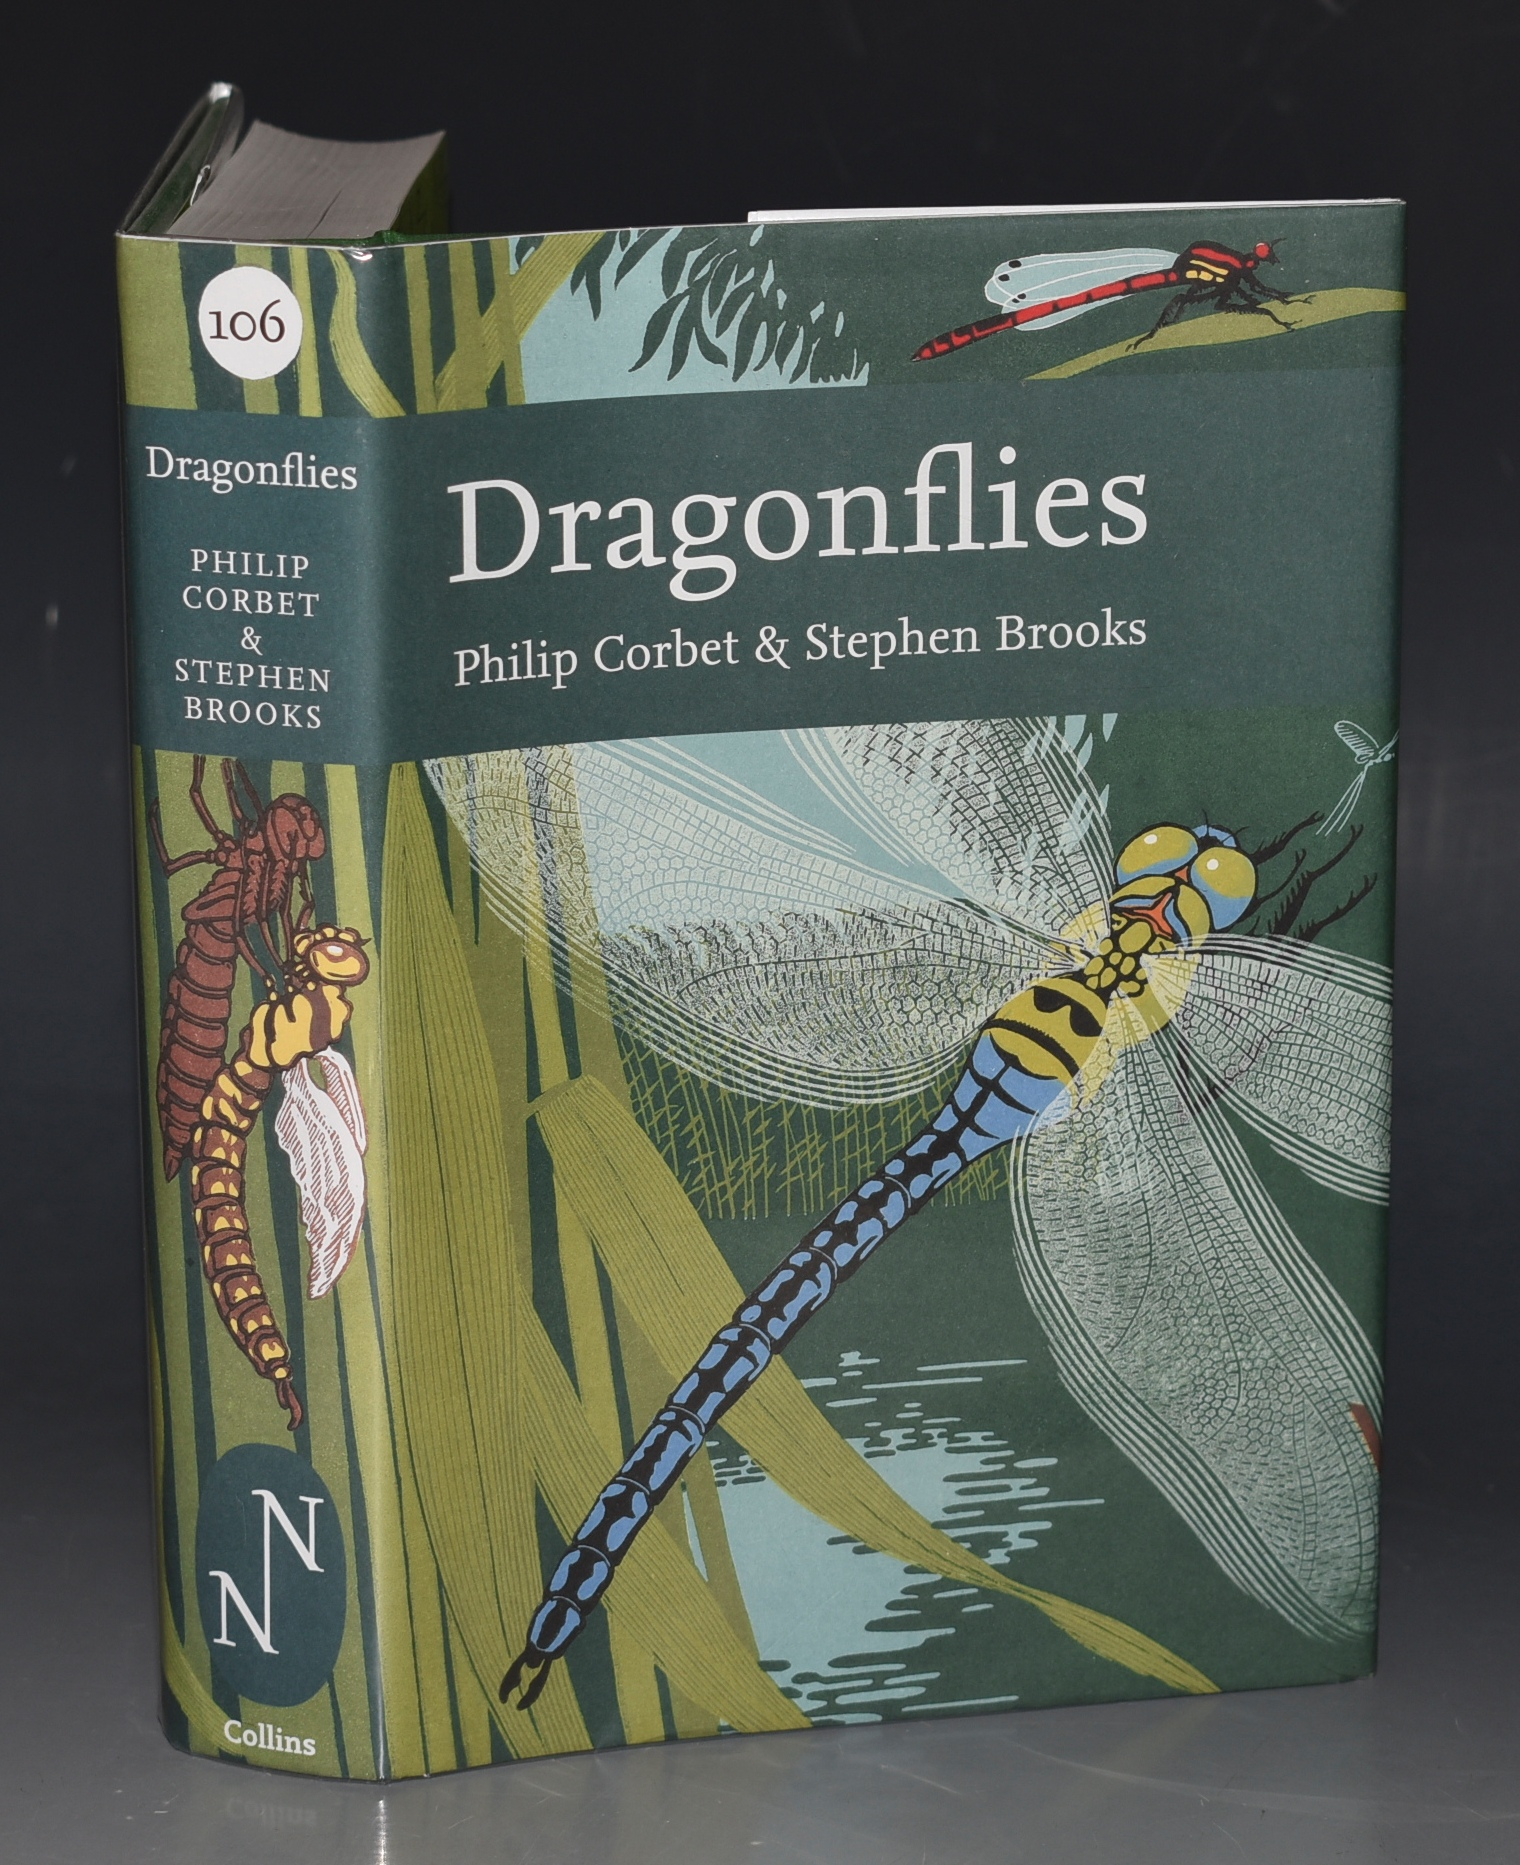 Image for Dragonflies. The New Naturalist (106.)